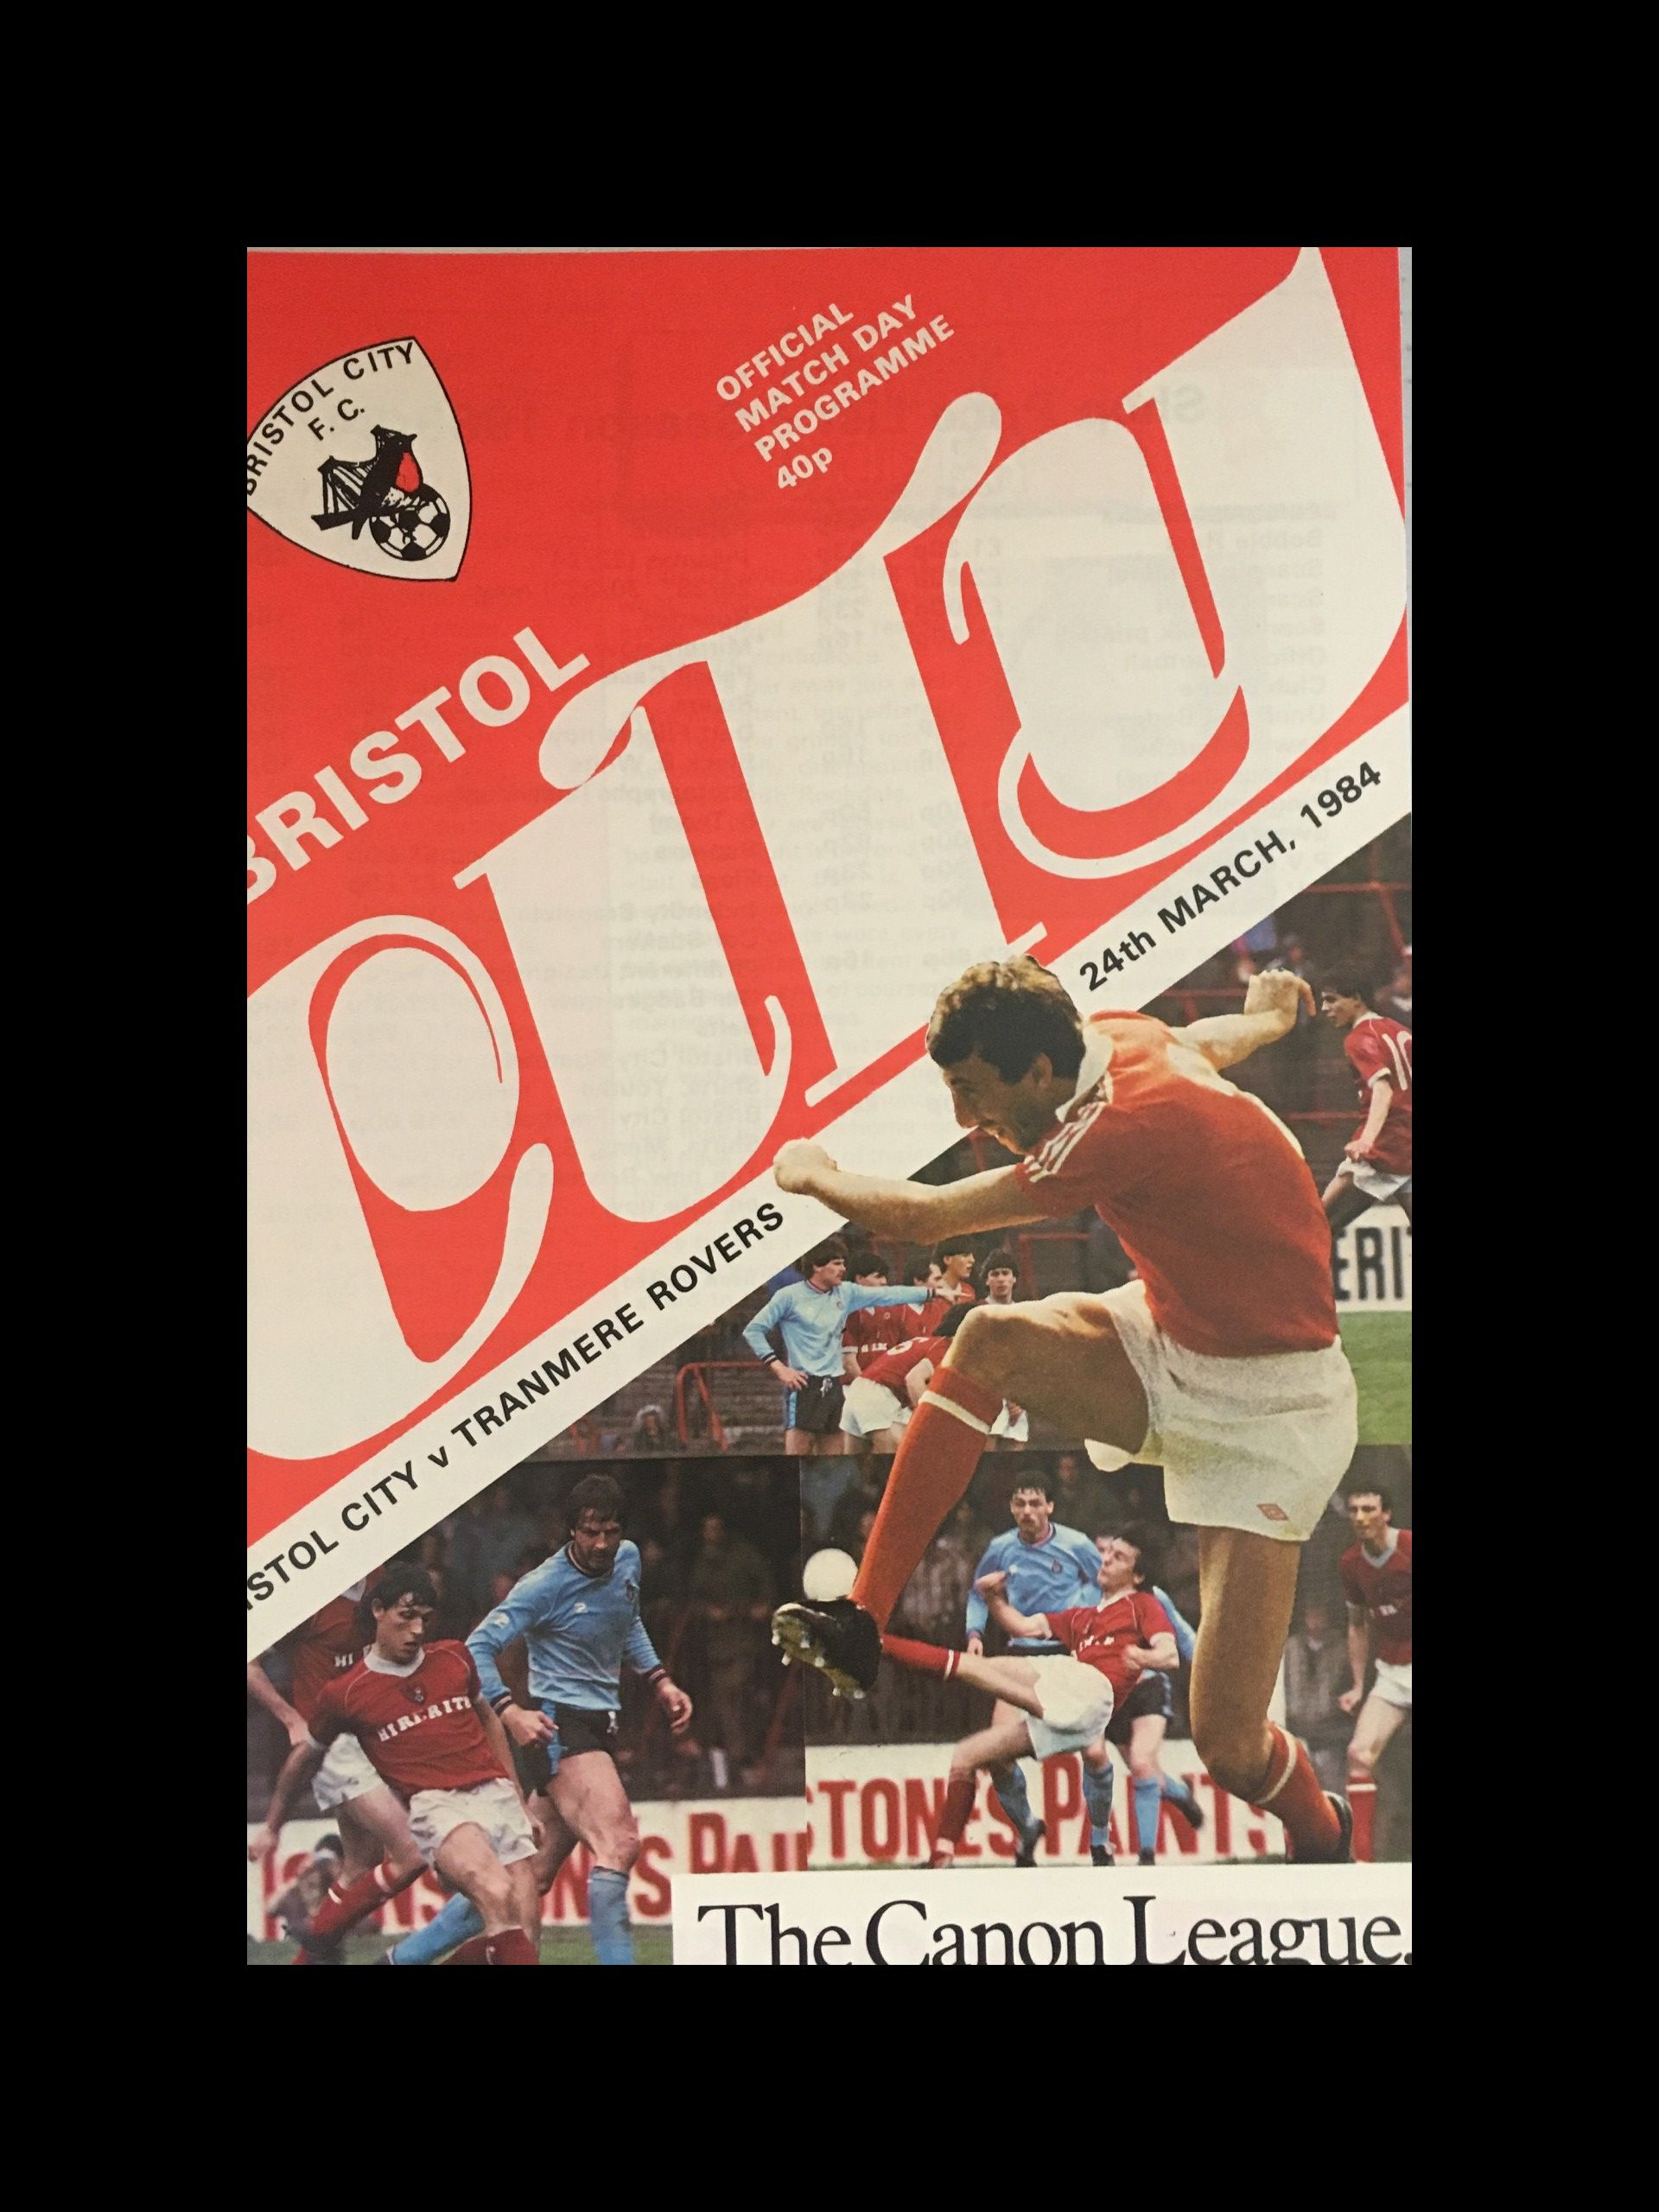 Bristol City v Tranmere Rovers 24-03-84 Programme